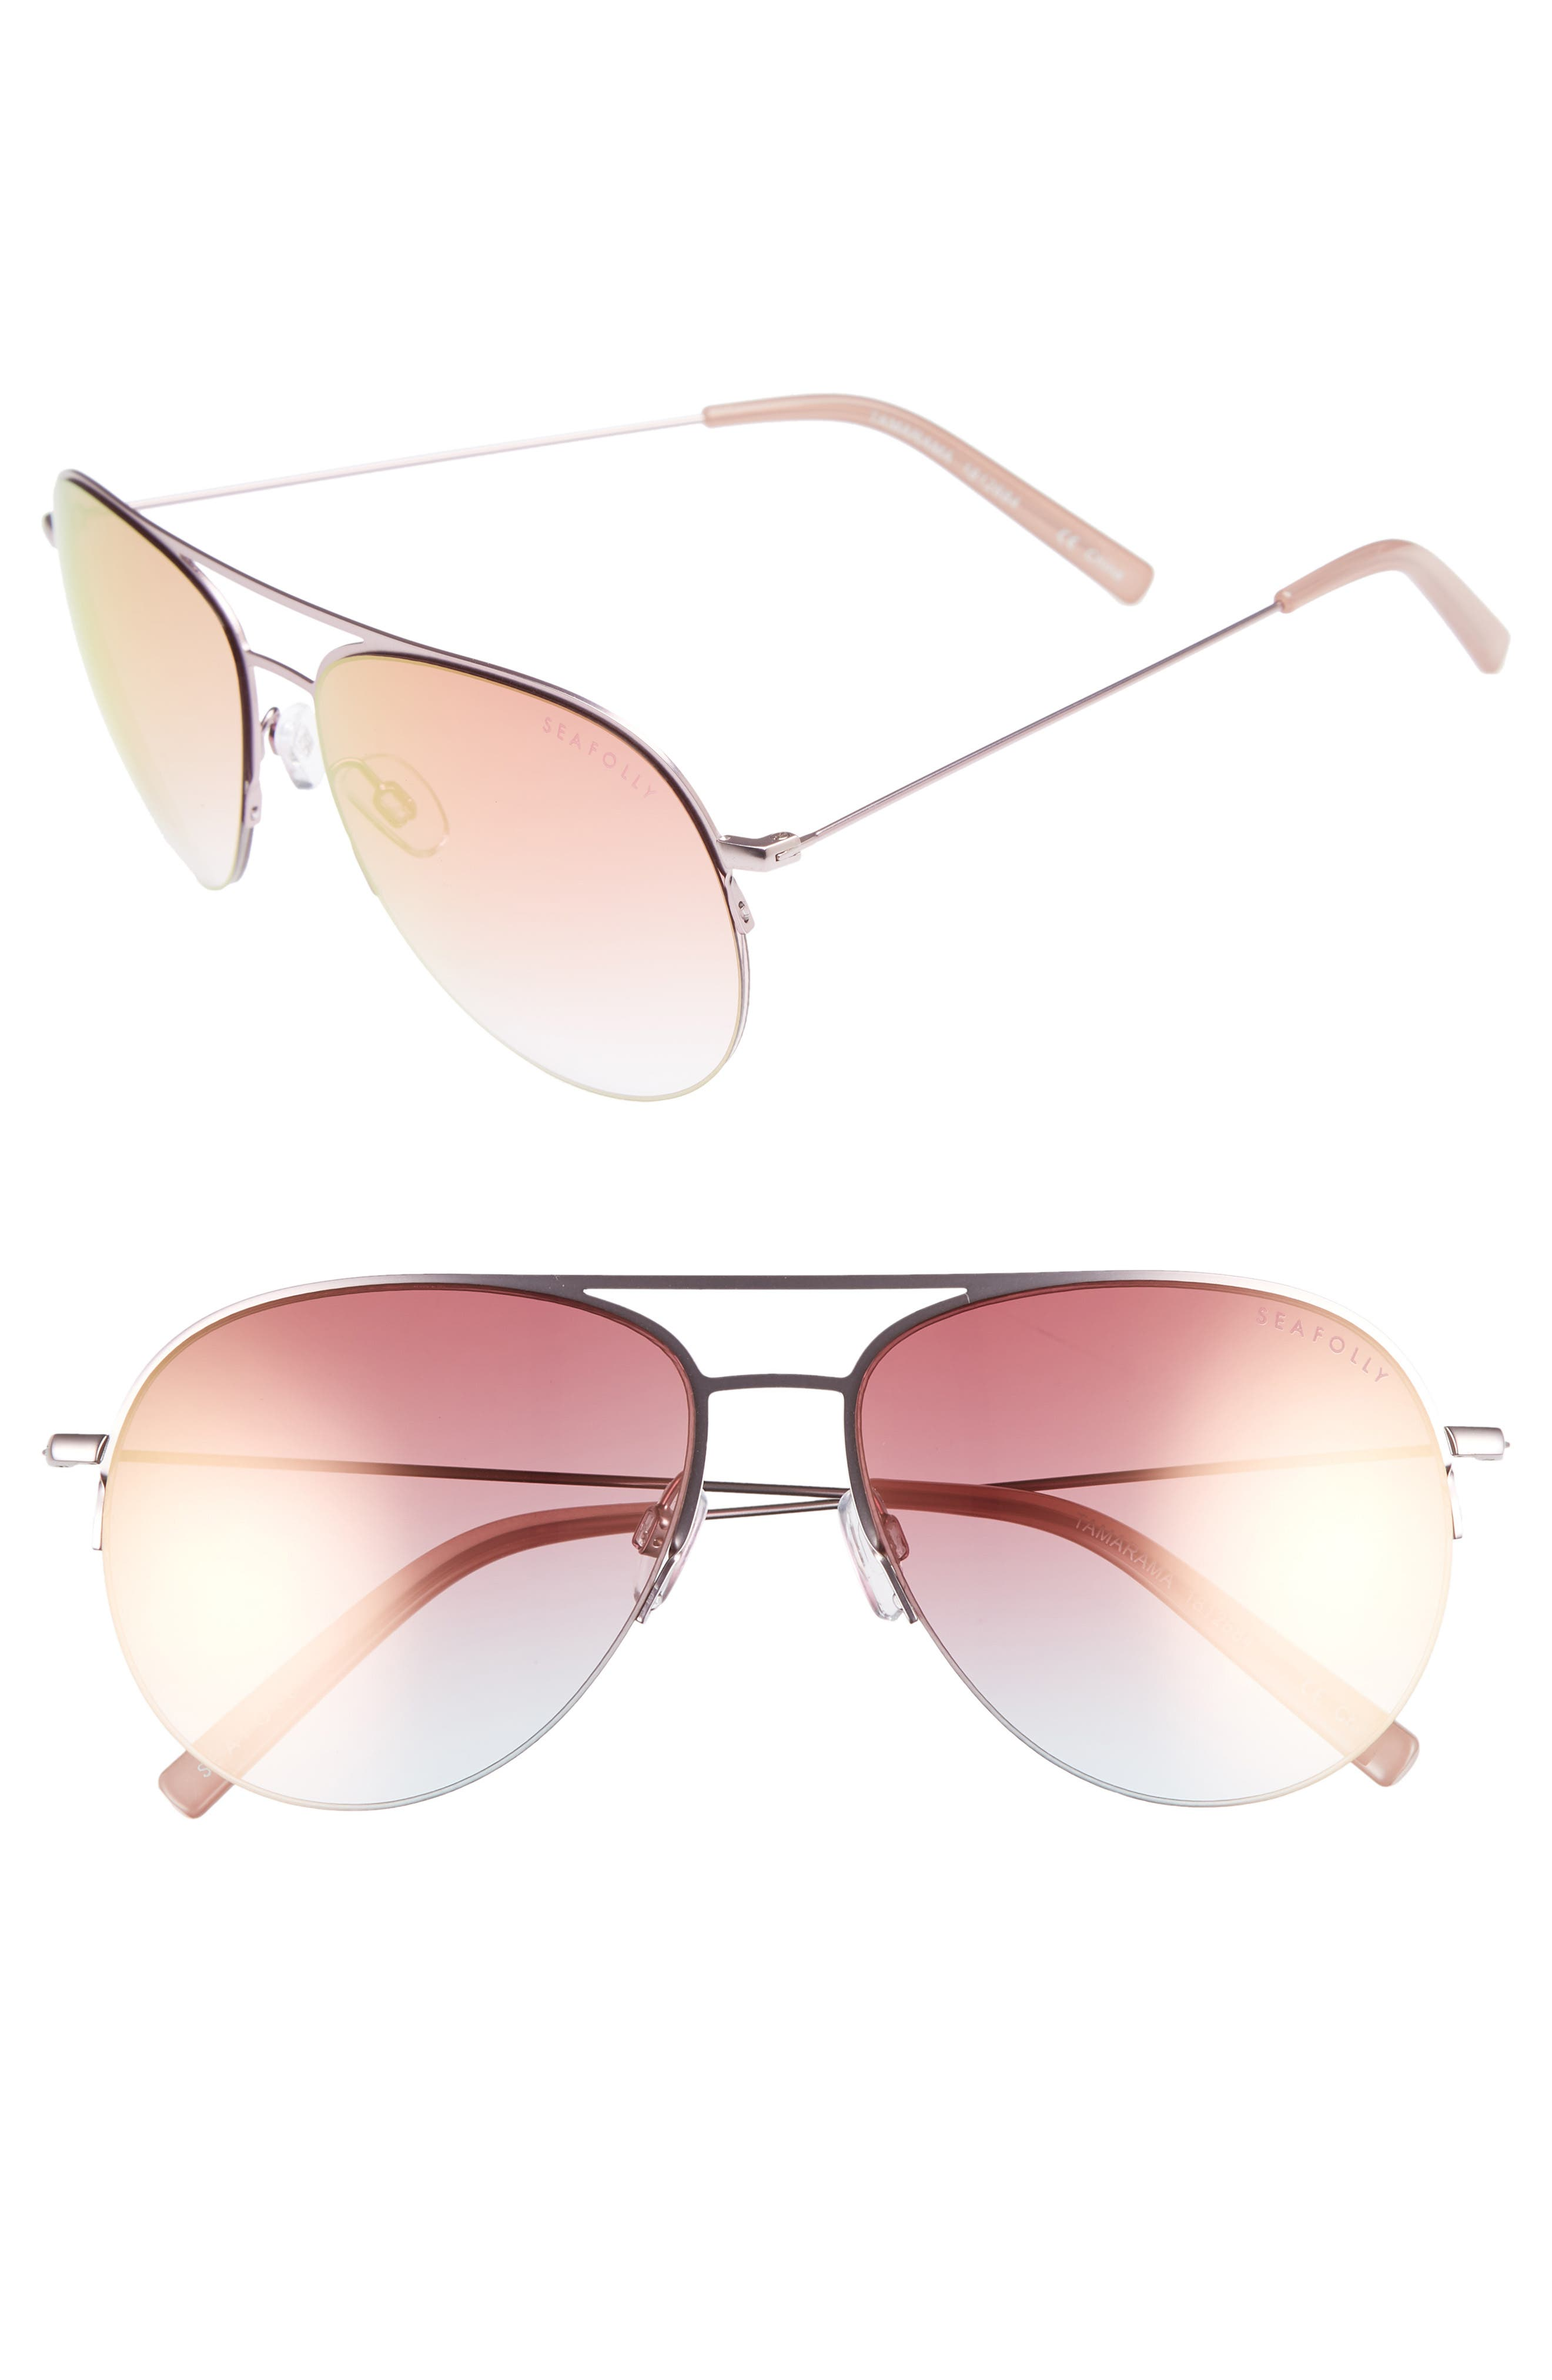 TAMARAMA 60MM AVIATOR SUNGLASSES - ROSE